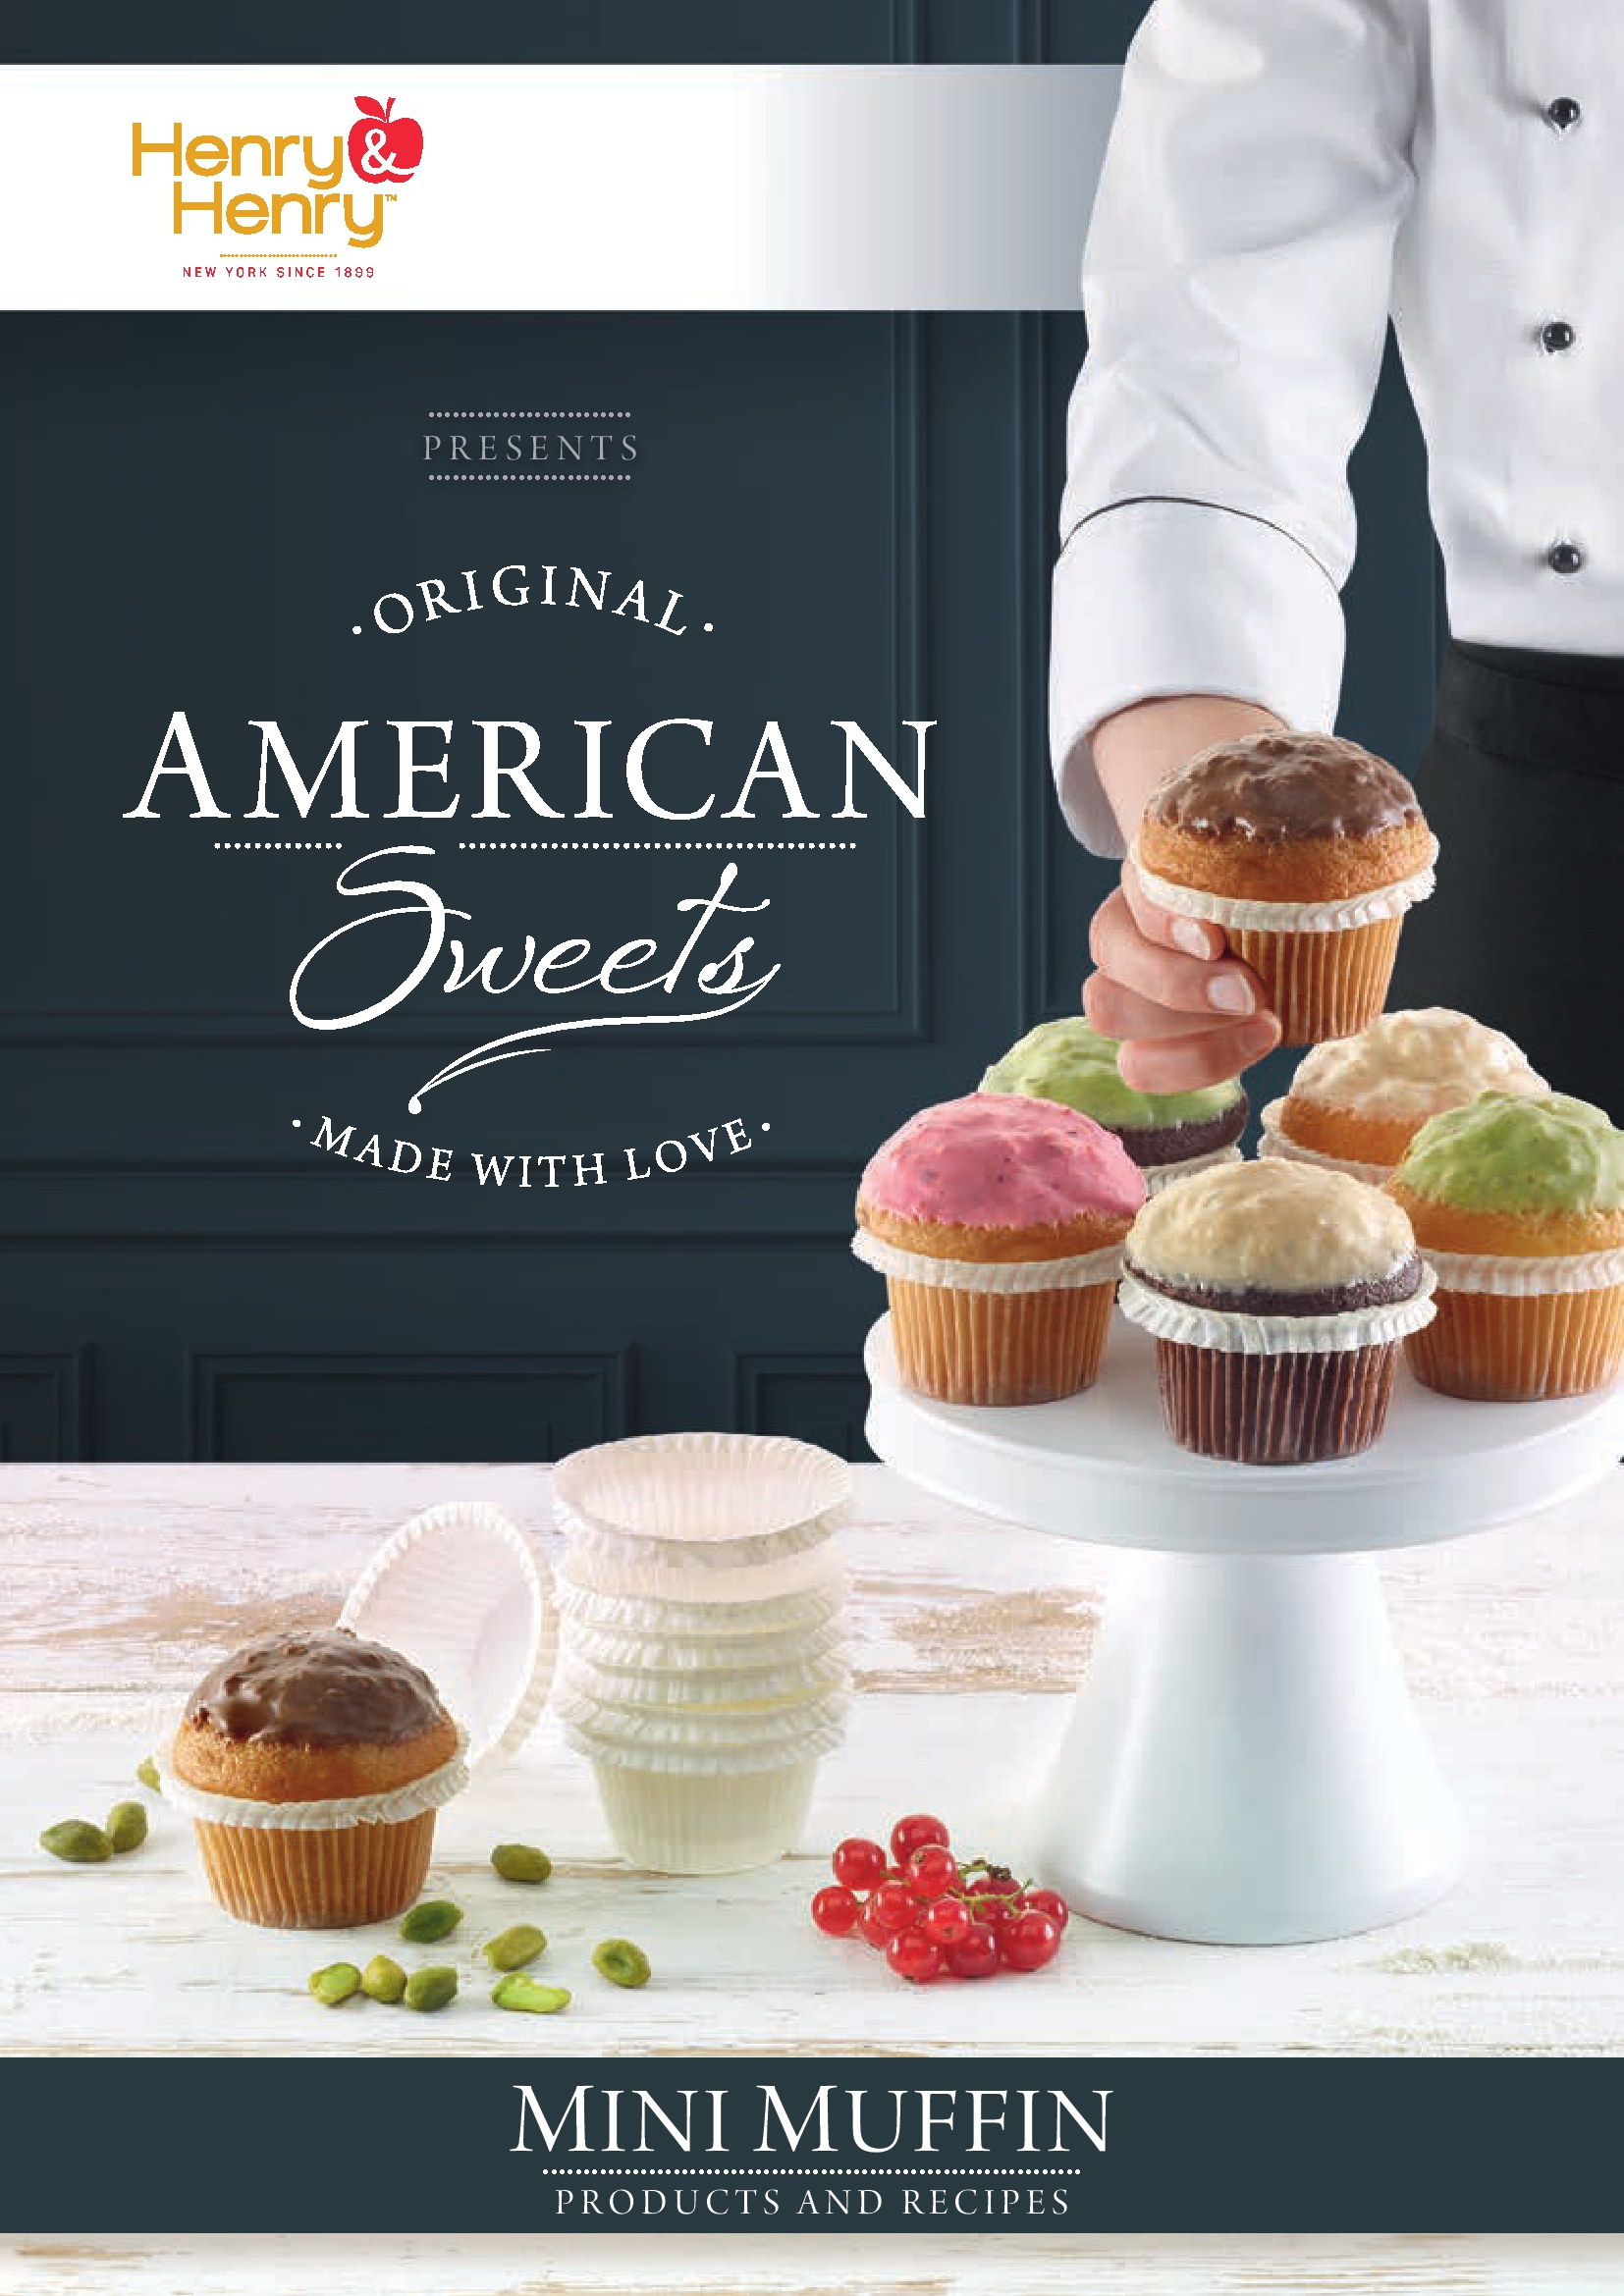 RZ_23356007_American_Sweets_Mini-Muffin_EN0001